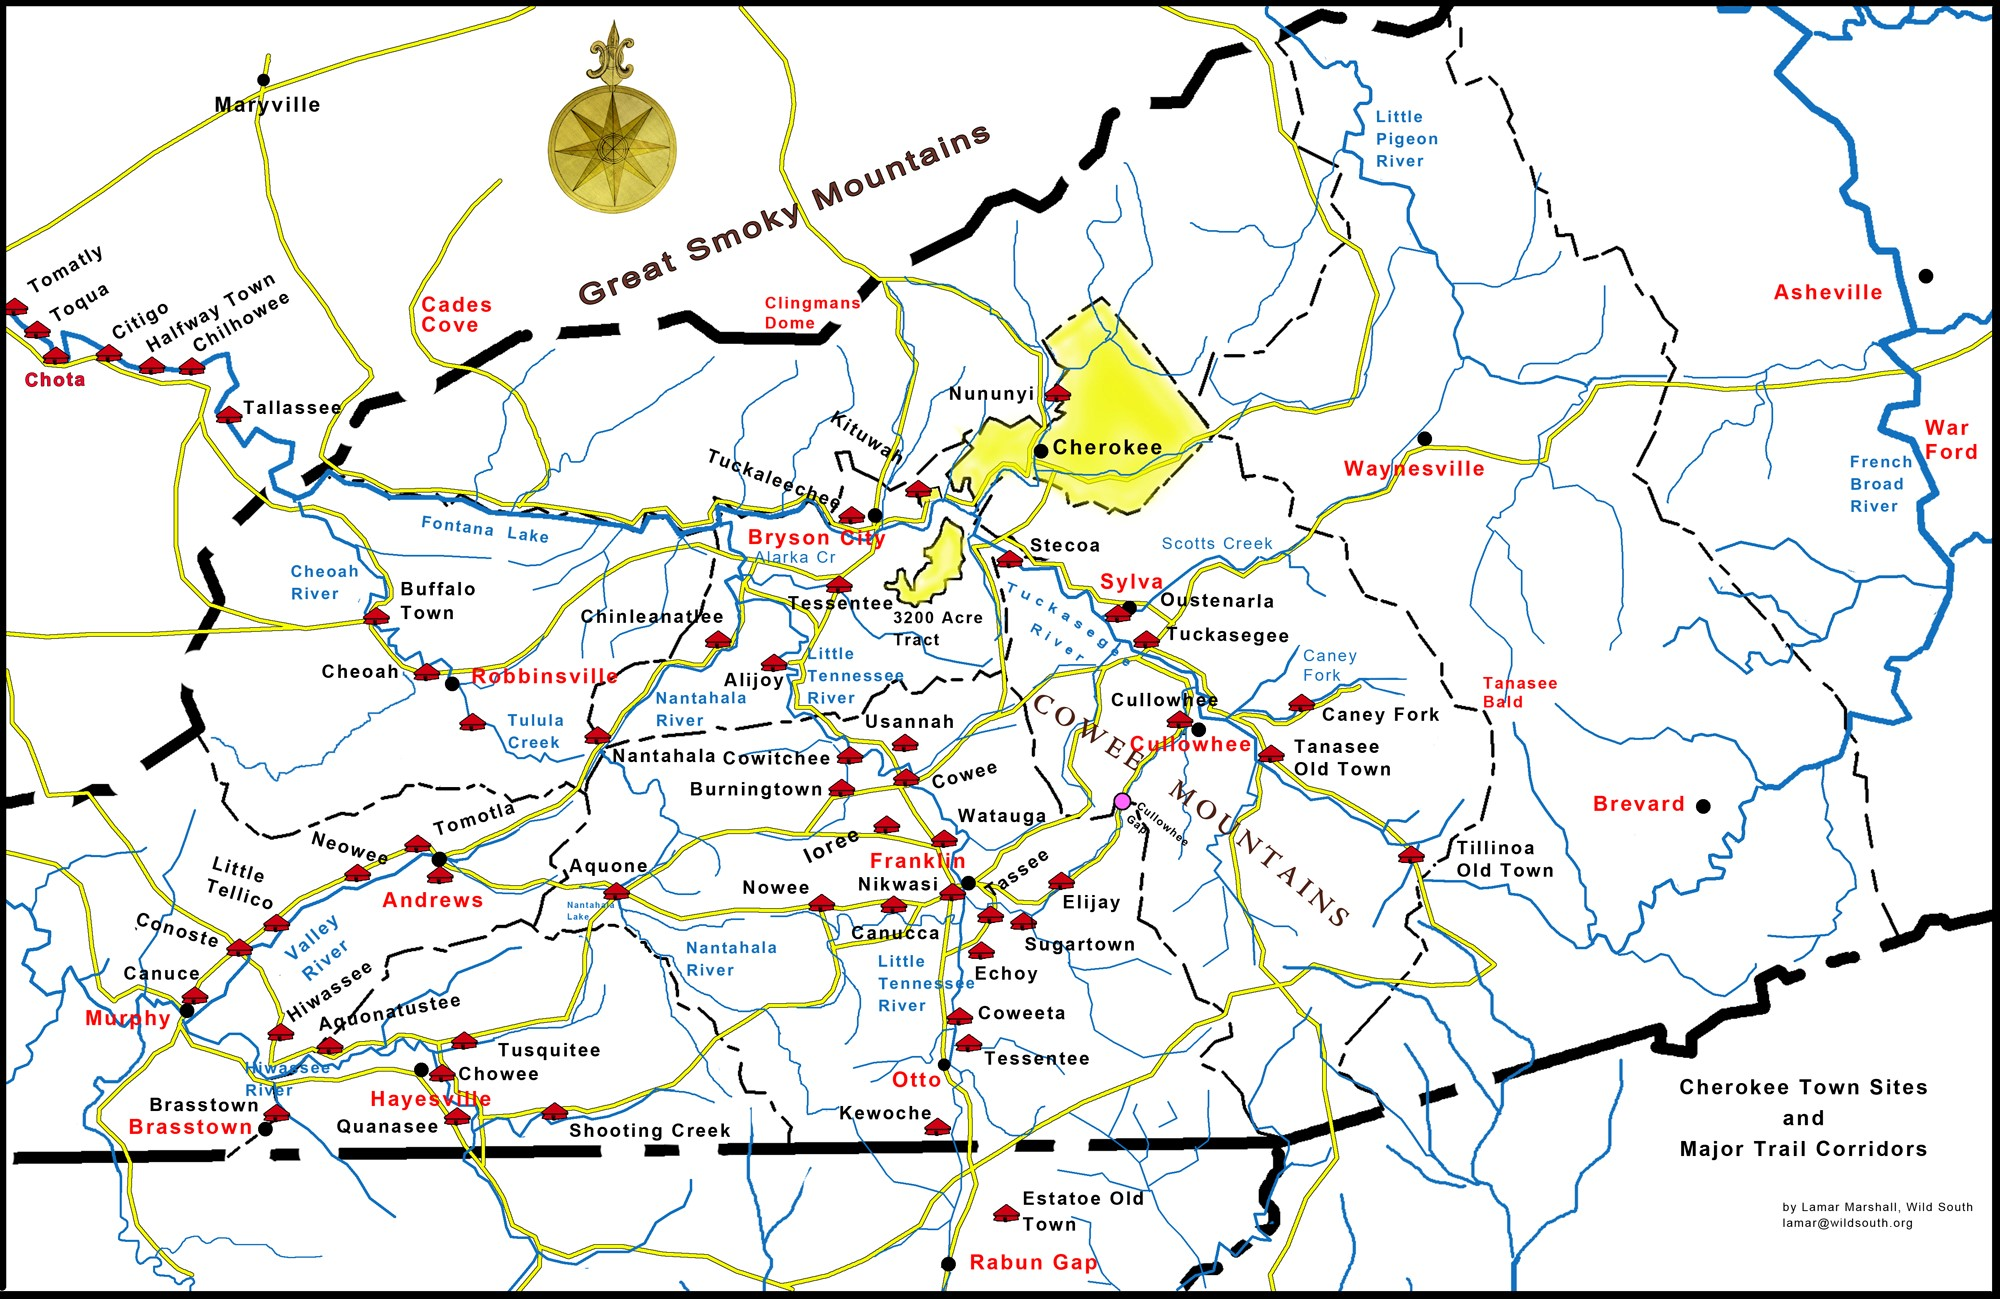 Cherokee Town Sites Map RLM